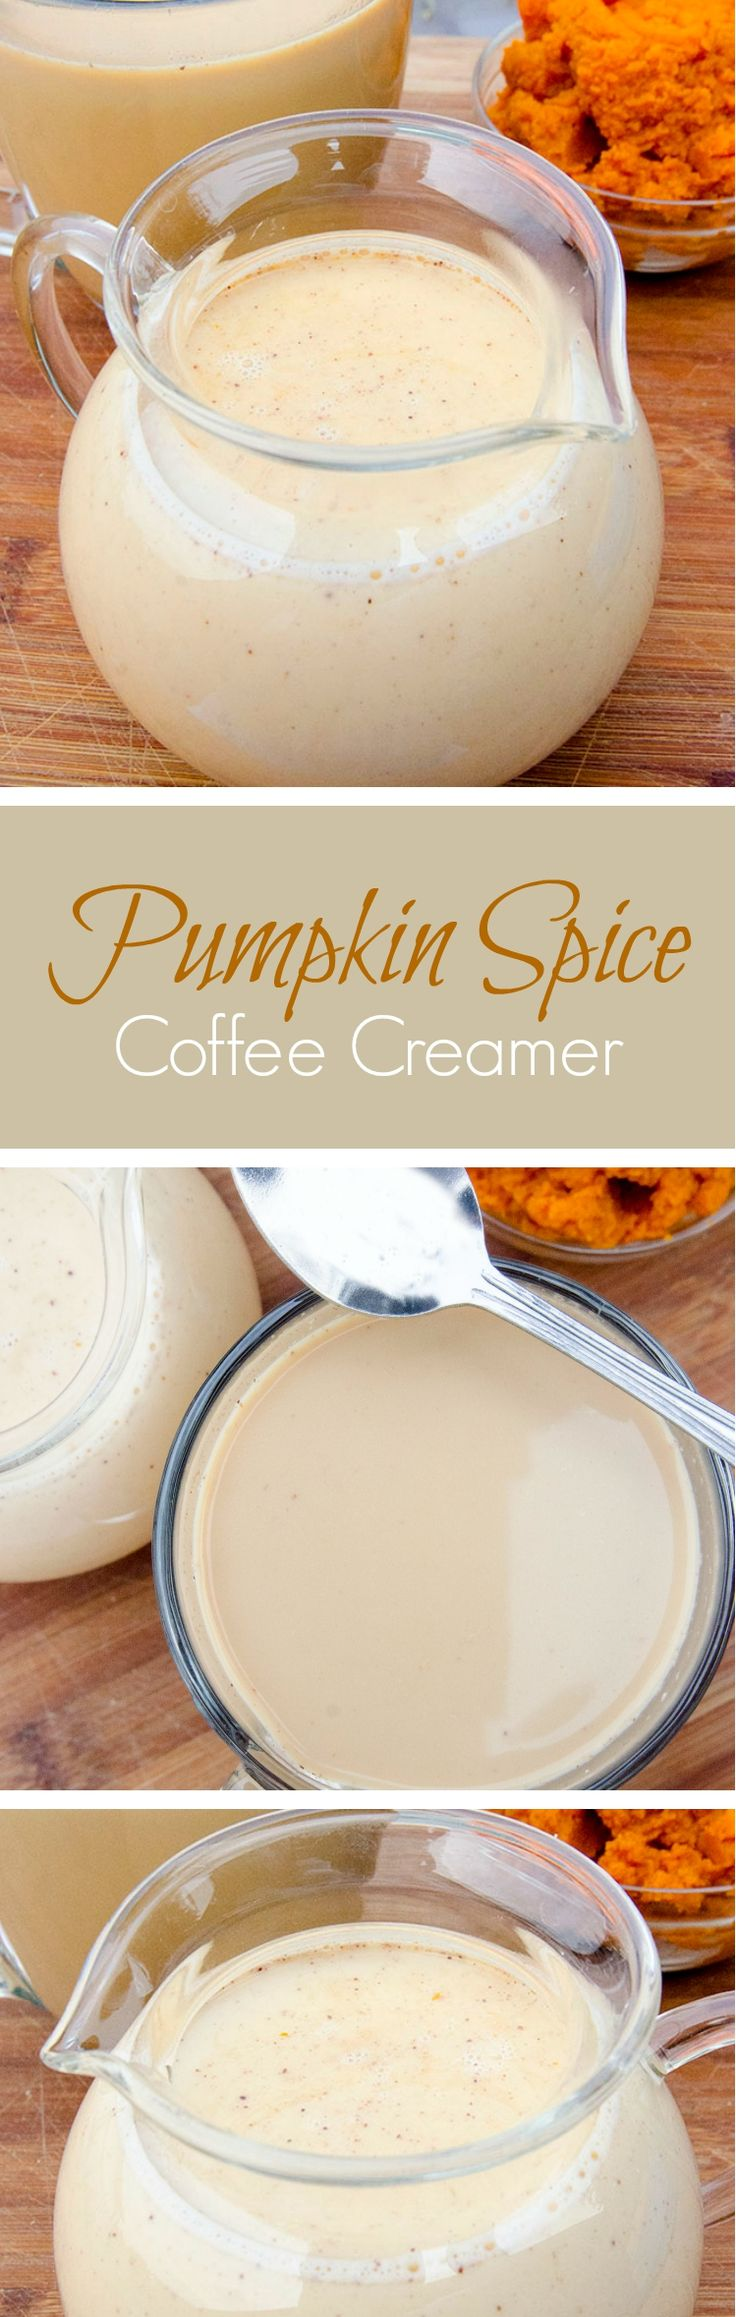 Easy recipe for the lust-worthy Pumpkin Spice Coffee Creamer, using just 6 yummy ingredients. Pumpkin Spice all the things!!! You're welcome.